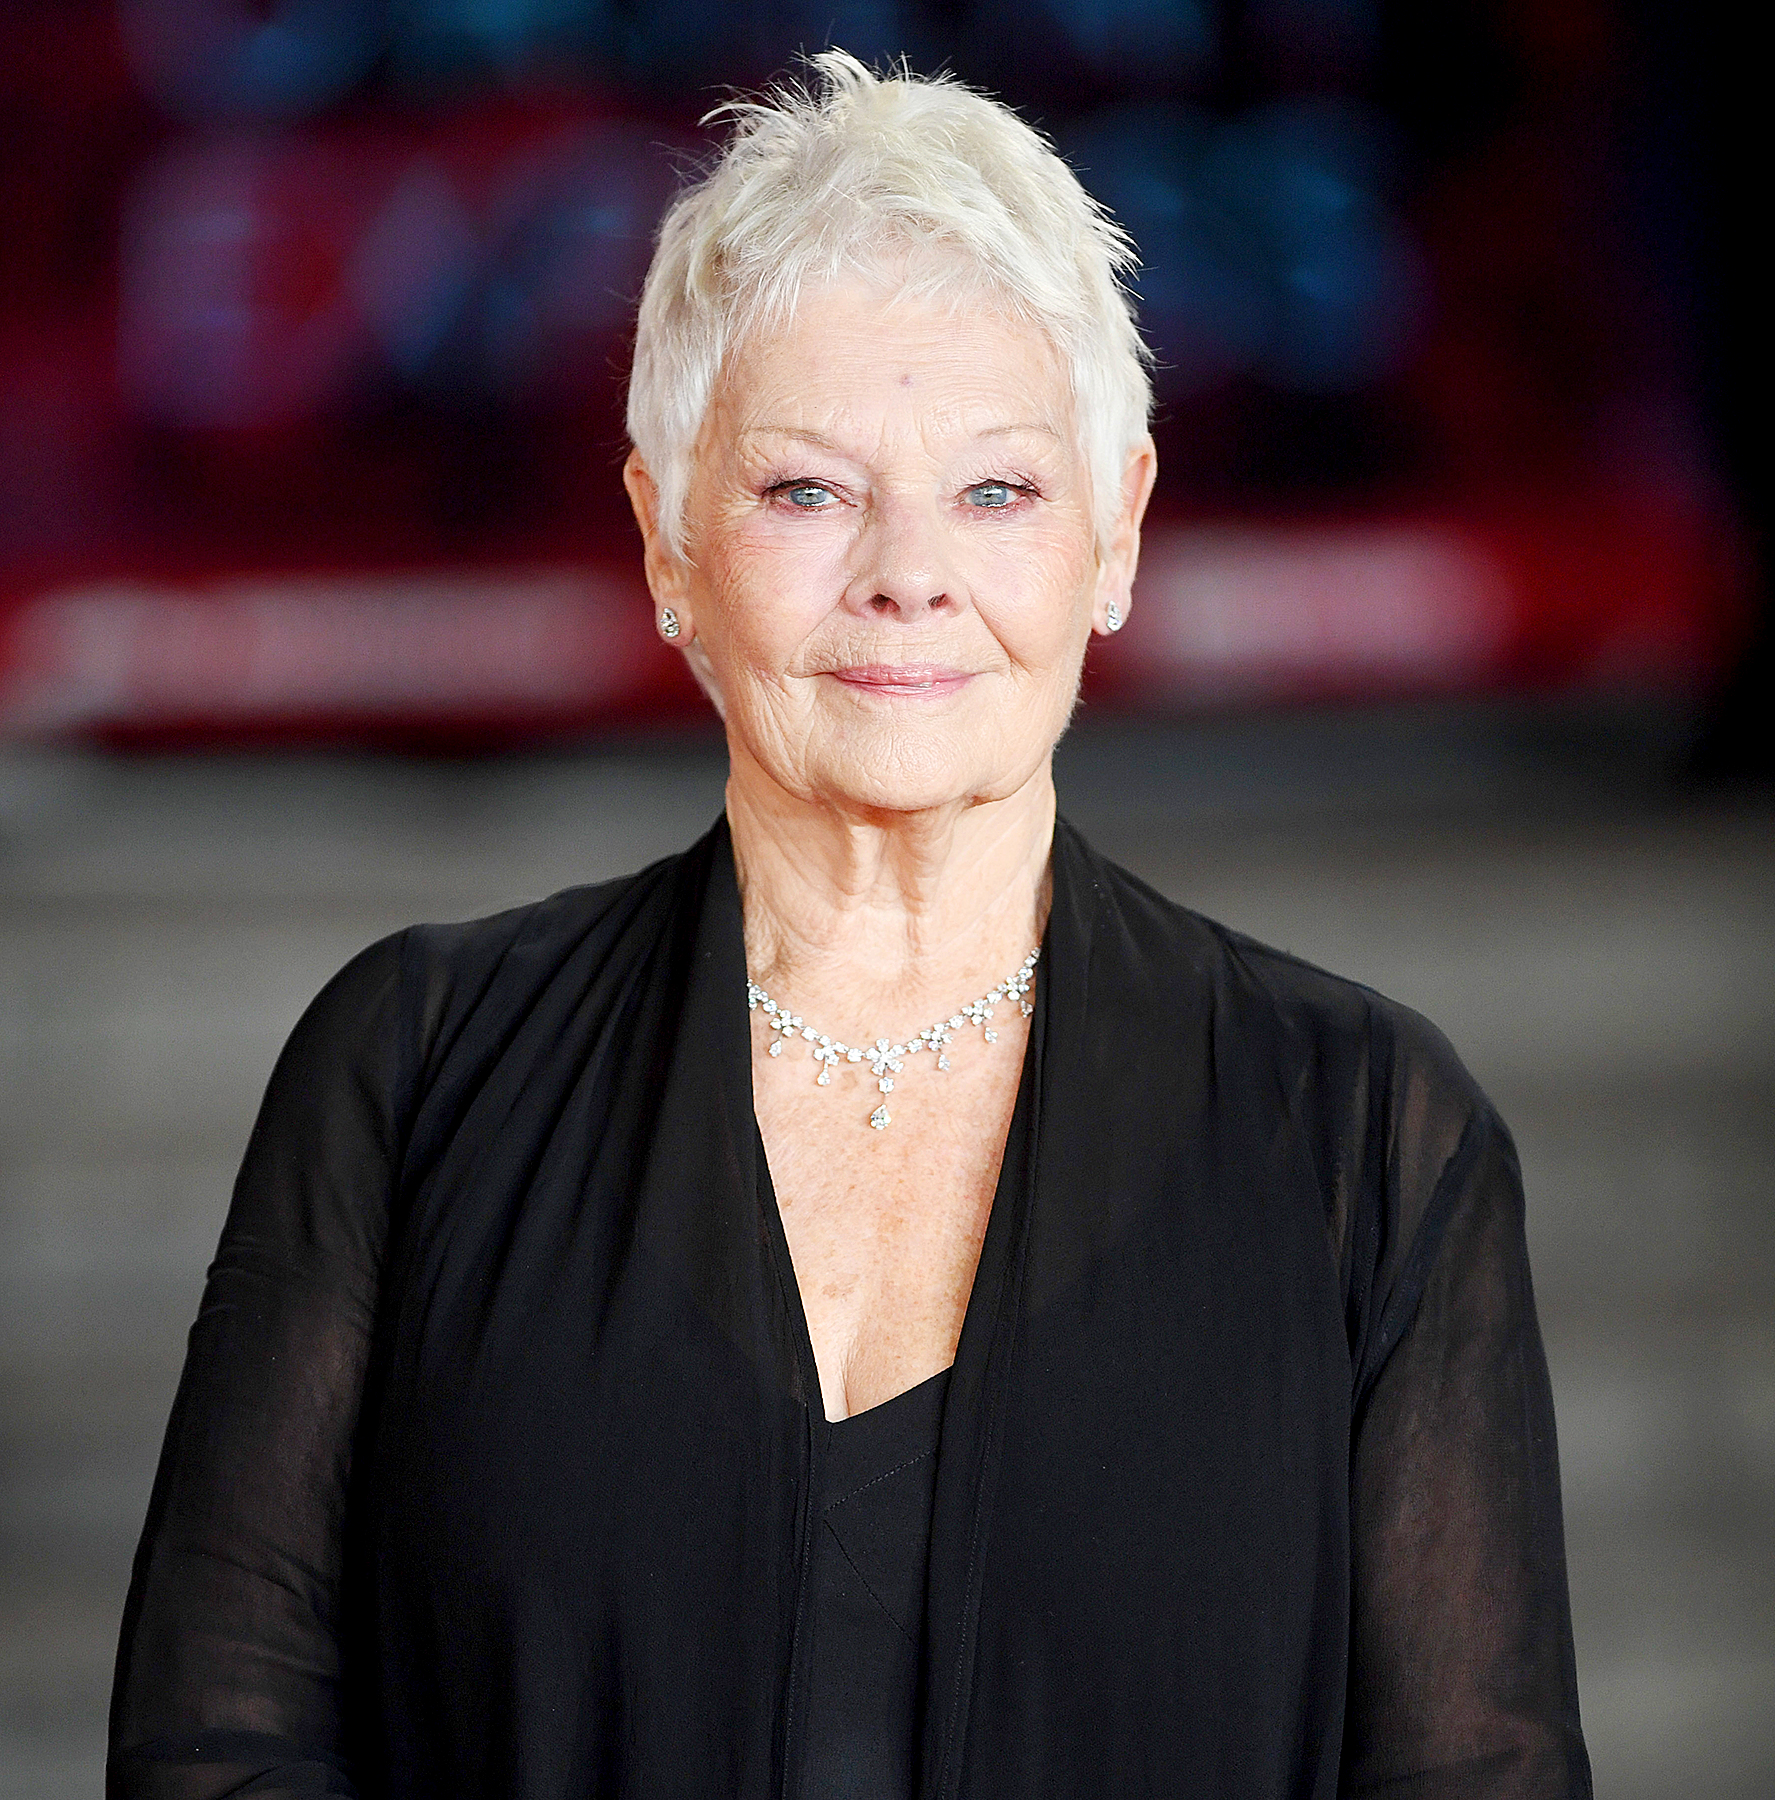 SAG Awards 2018 Twitter Reacts to Judi Dench Leading Roll Typo 1775x1800